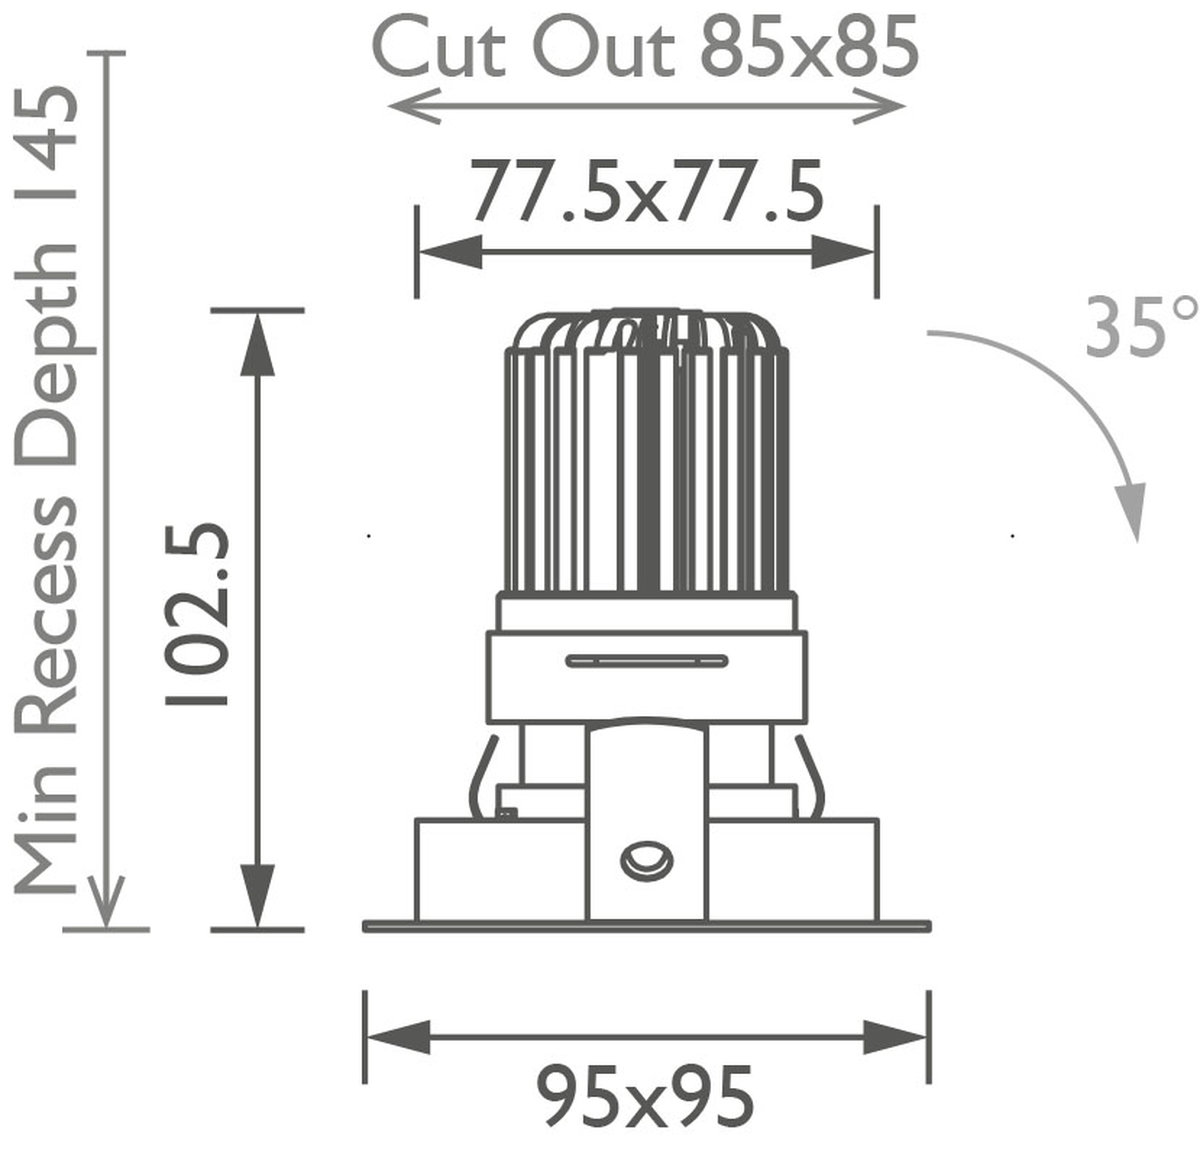 Square 50+ Downlight technical image